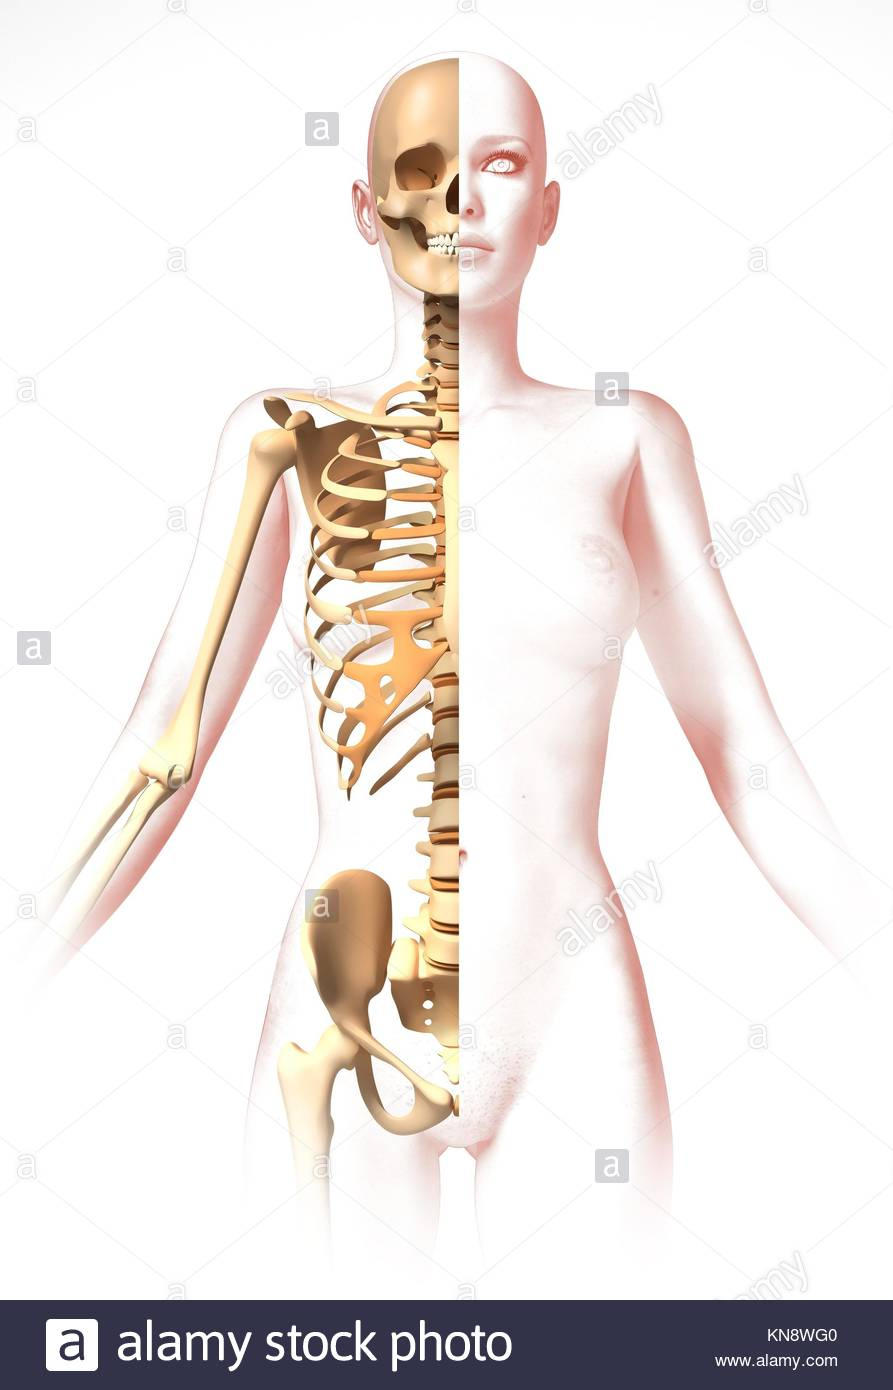 Woman Body With Skeleton Anatomy Image Stylized Look Clipping